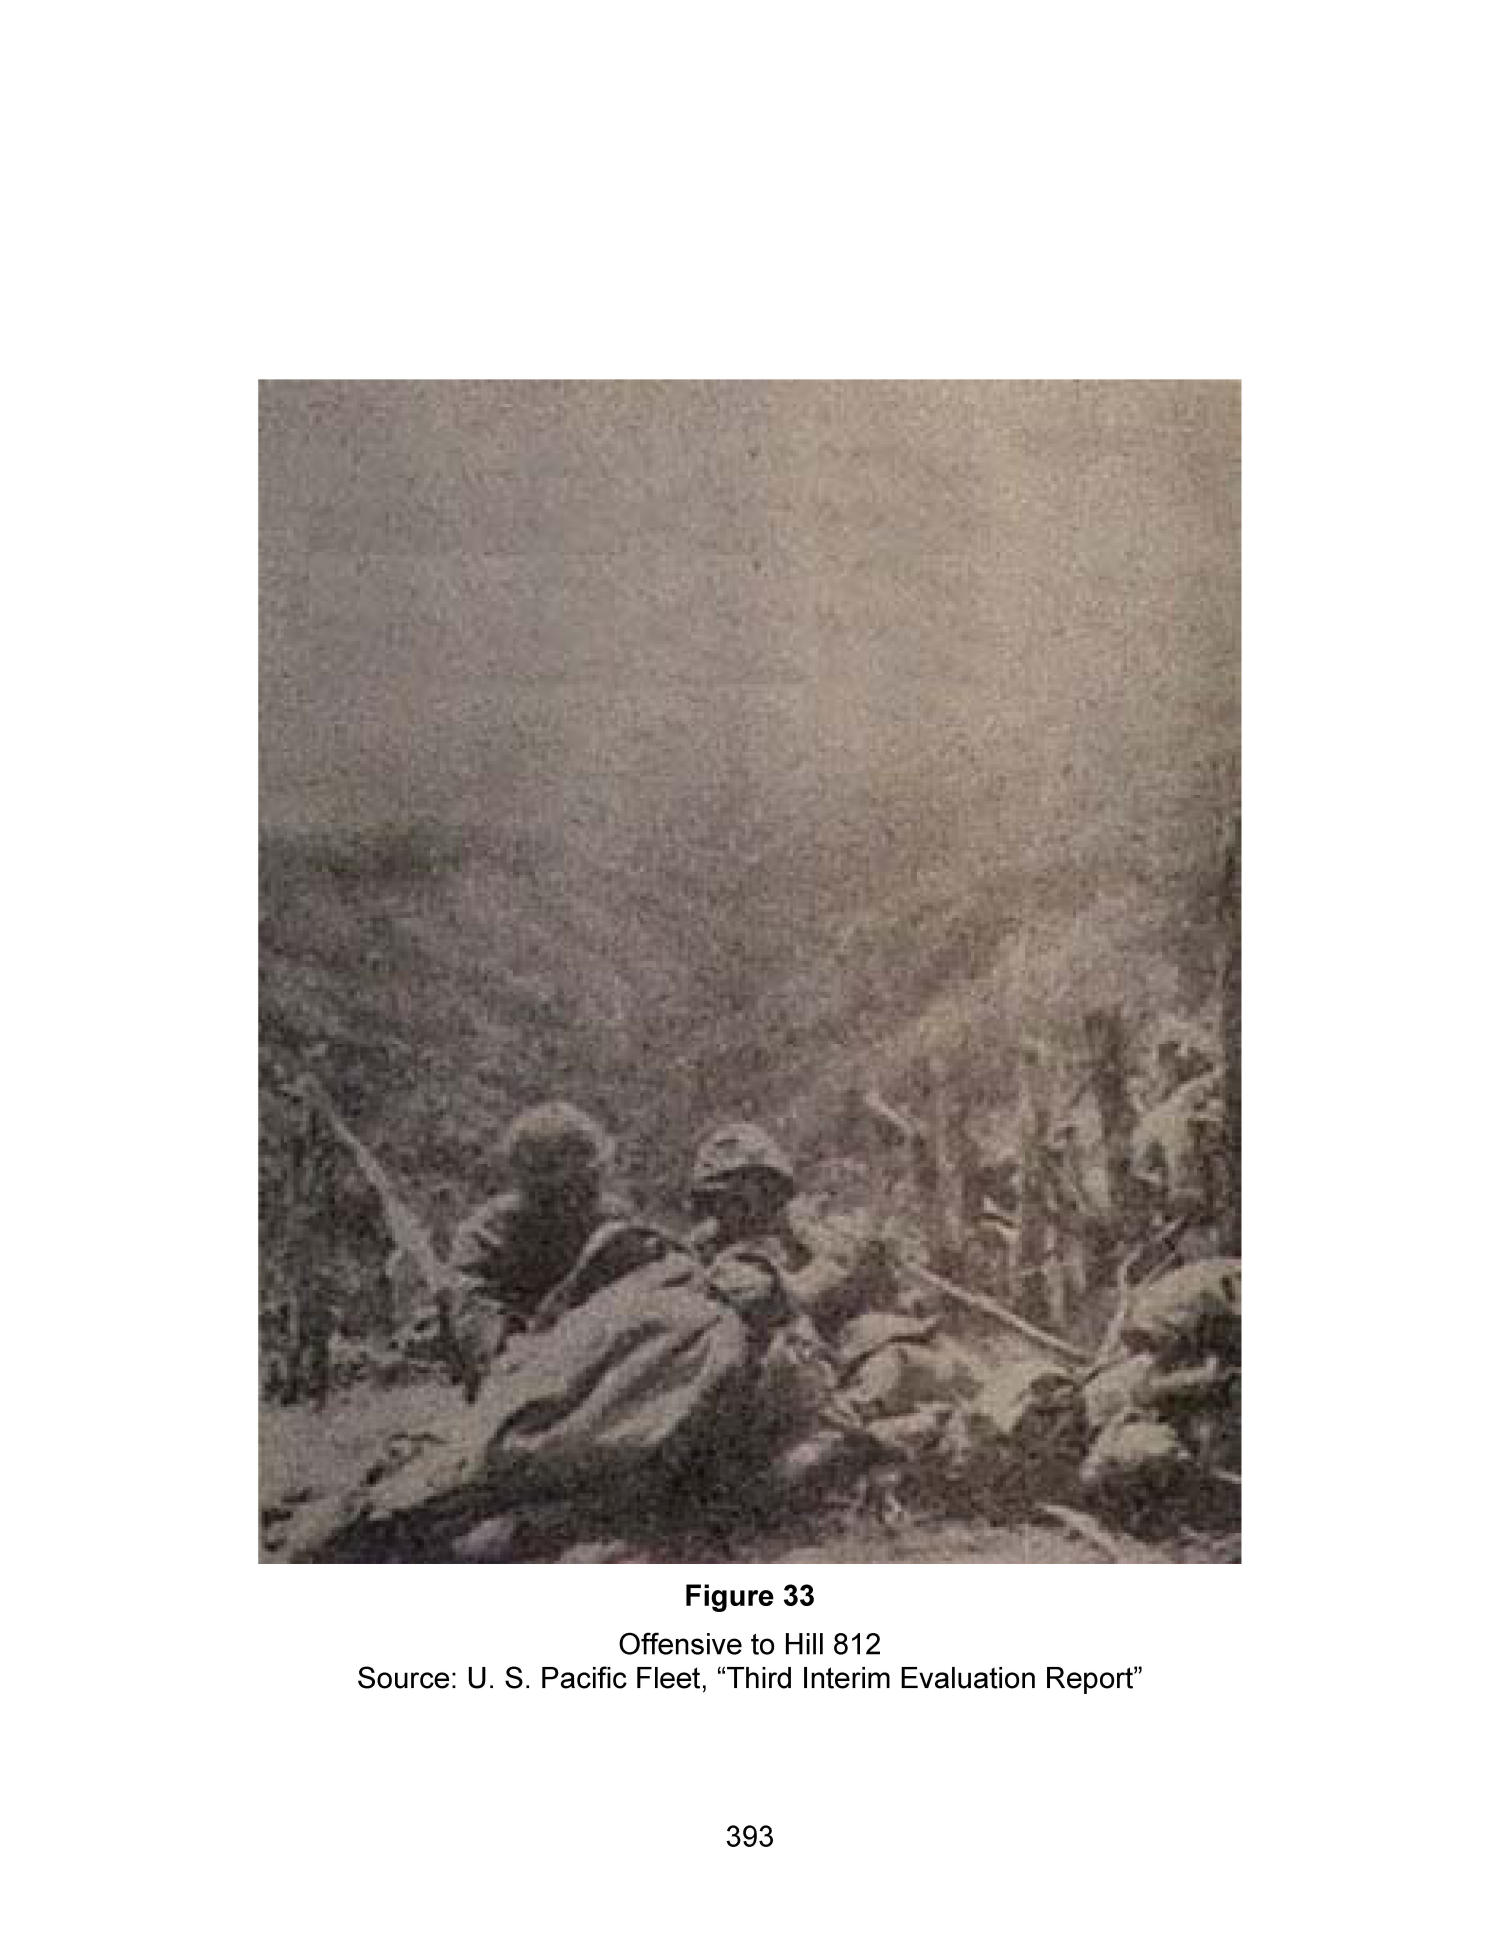 Battle for the Punchbowl: The U. S. 1st Marine Division 1951 Fall Offensive of the Korean War                                                                                                      393